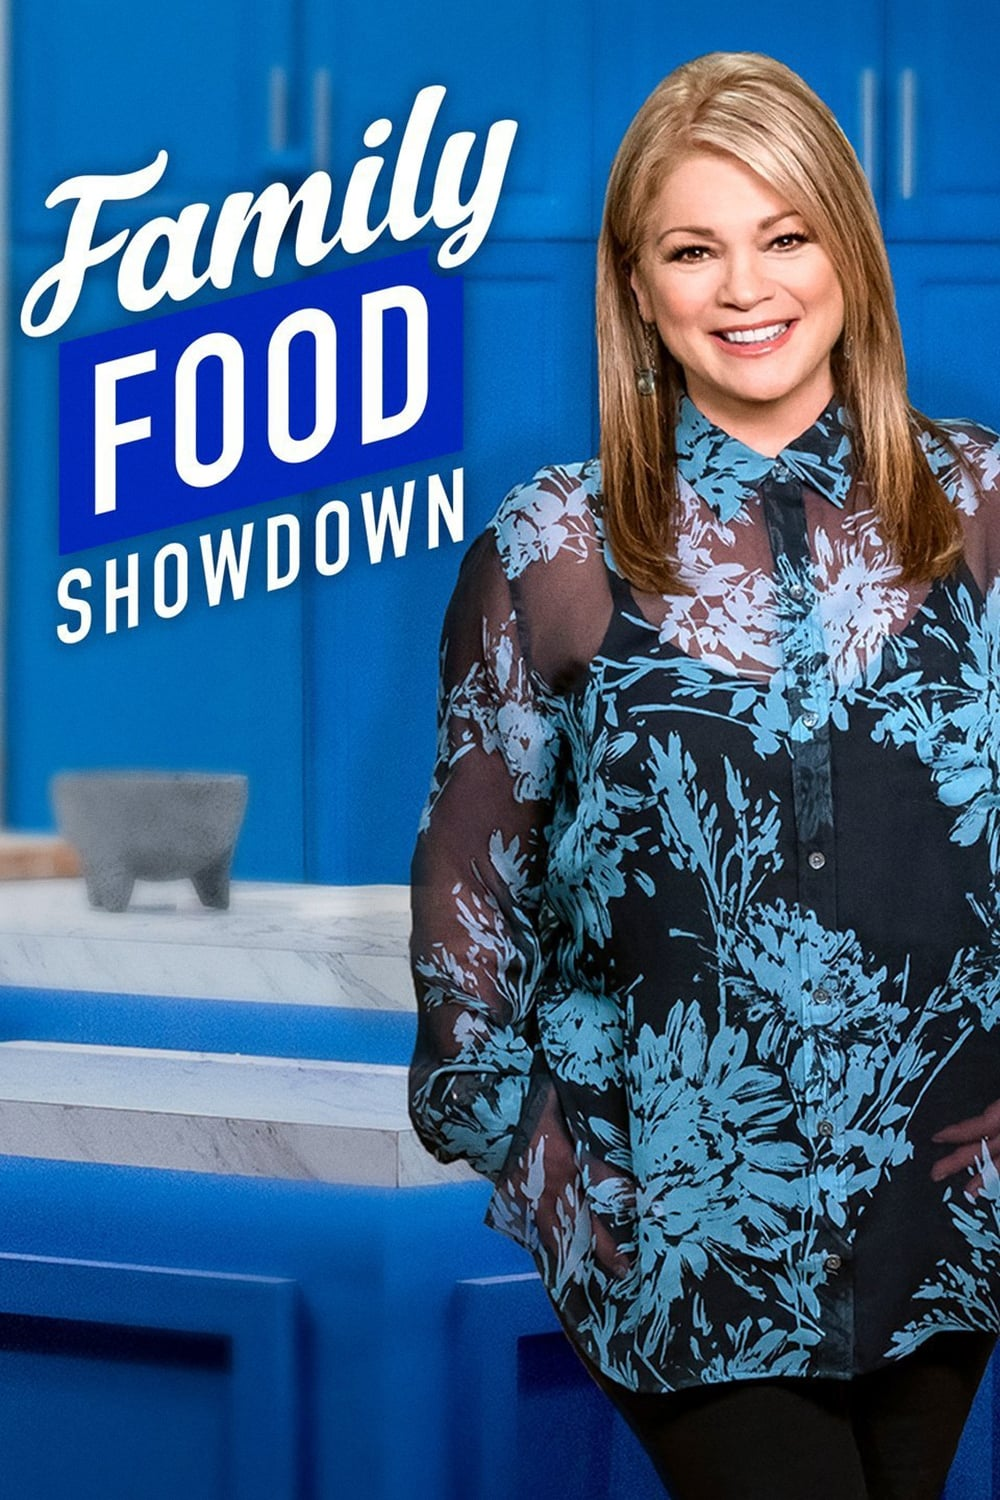 Family Food Showdown TV Shows About Cooking Competition